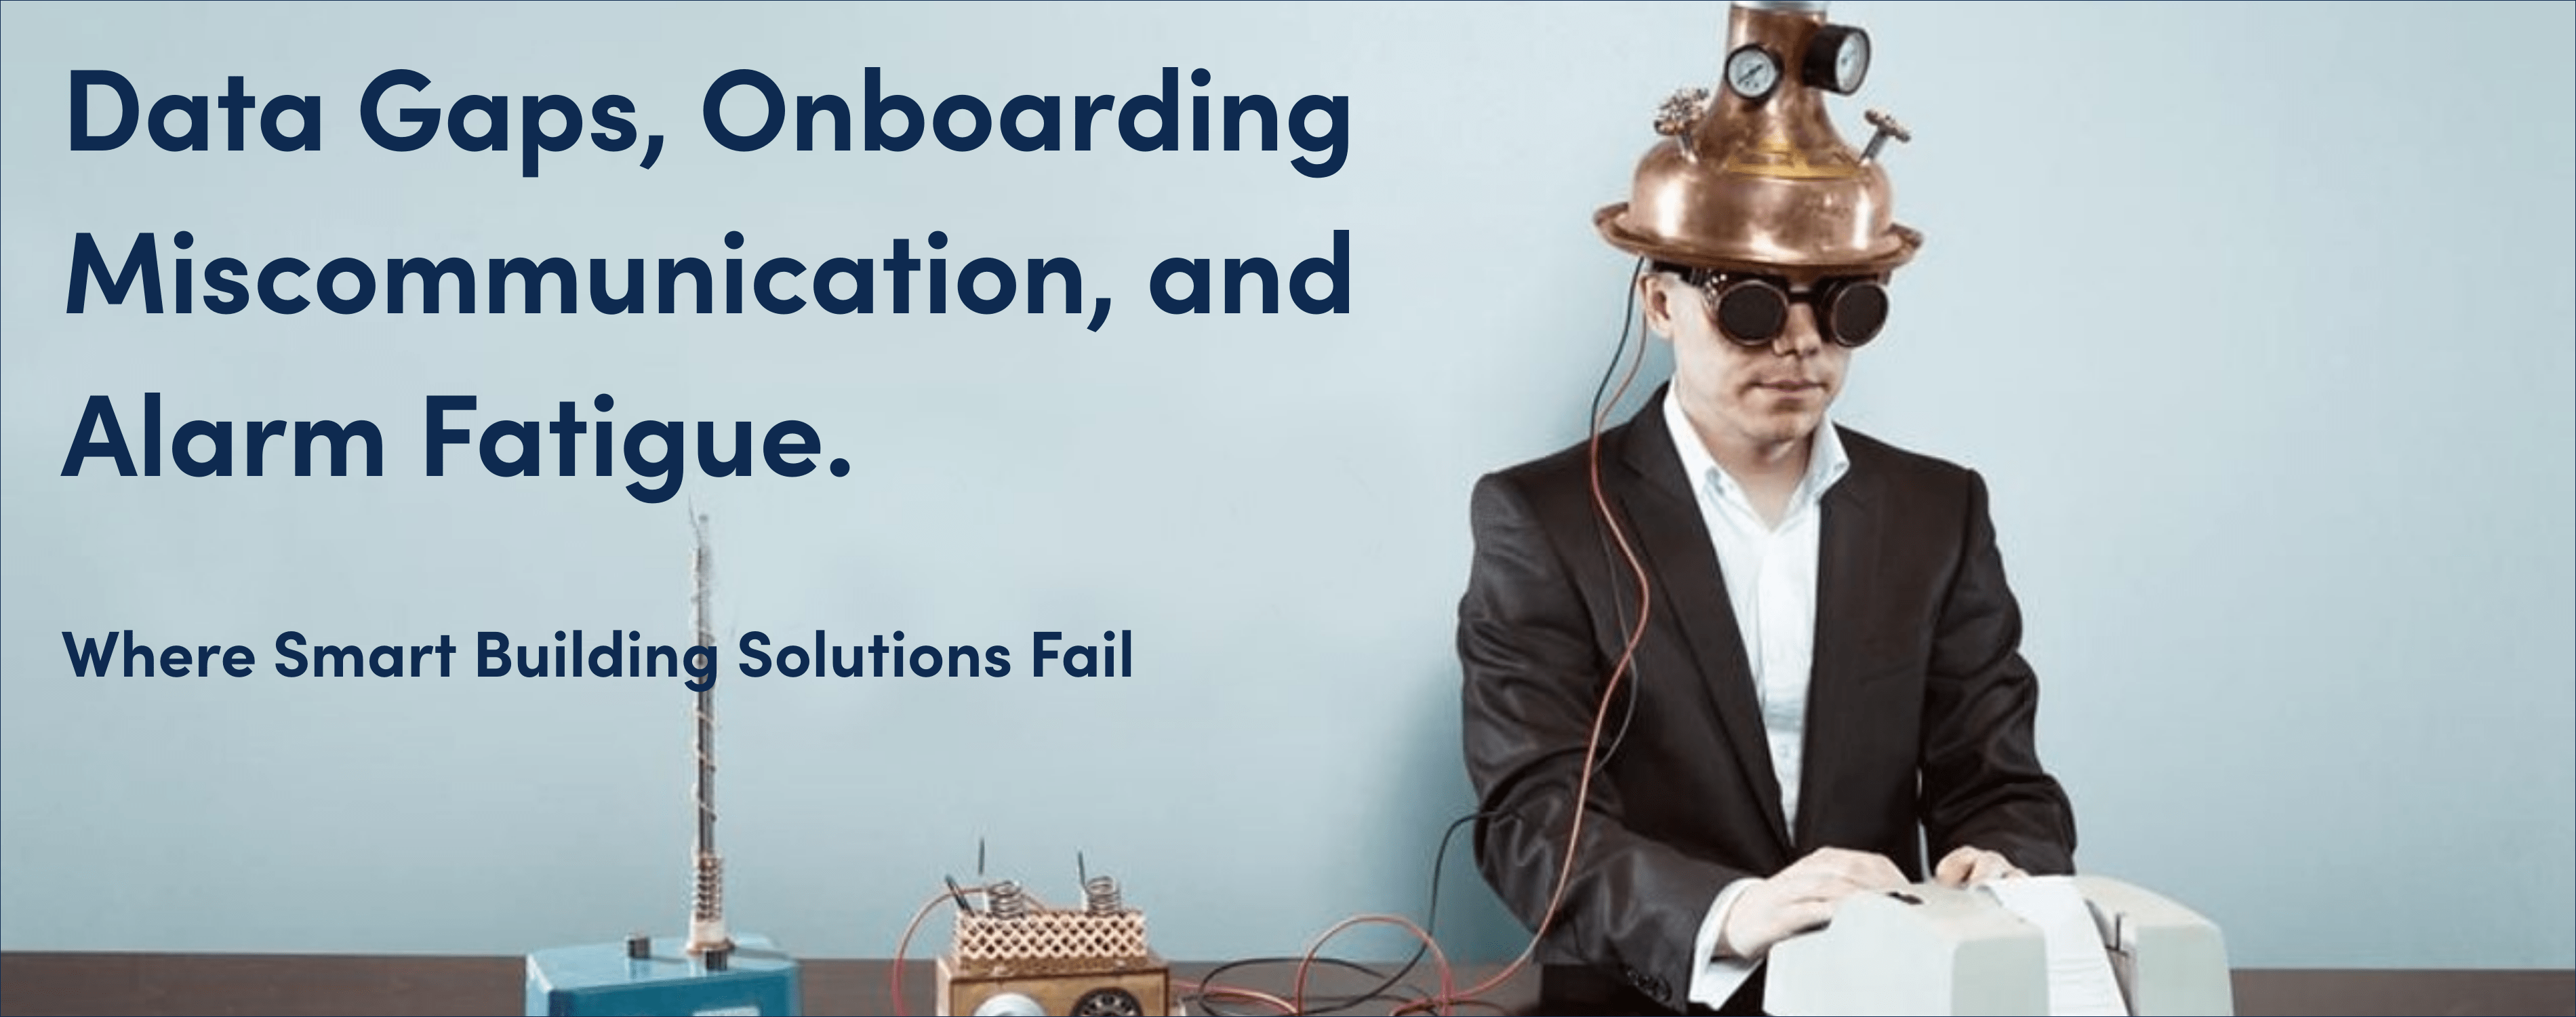 Data Gaps, Onboarding Miscommunication, and Alarm Fatigue. Where Smart Building Solutions Fail